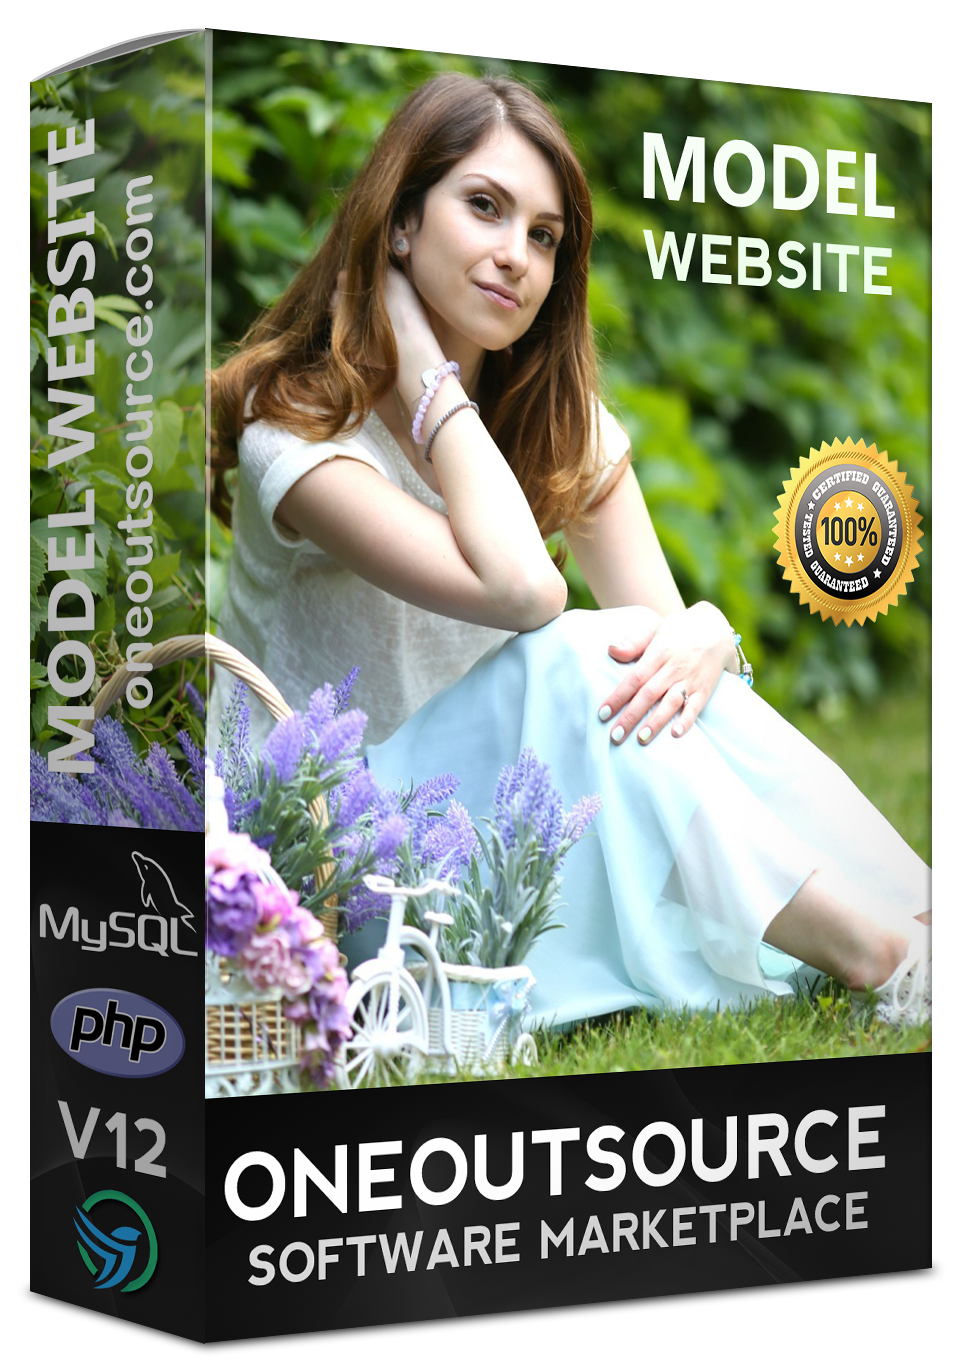 model website php scripts software